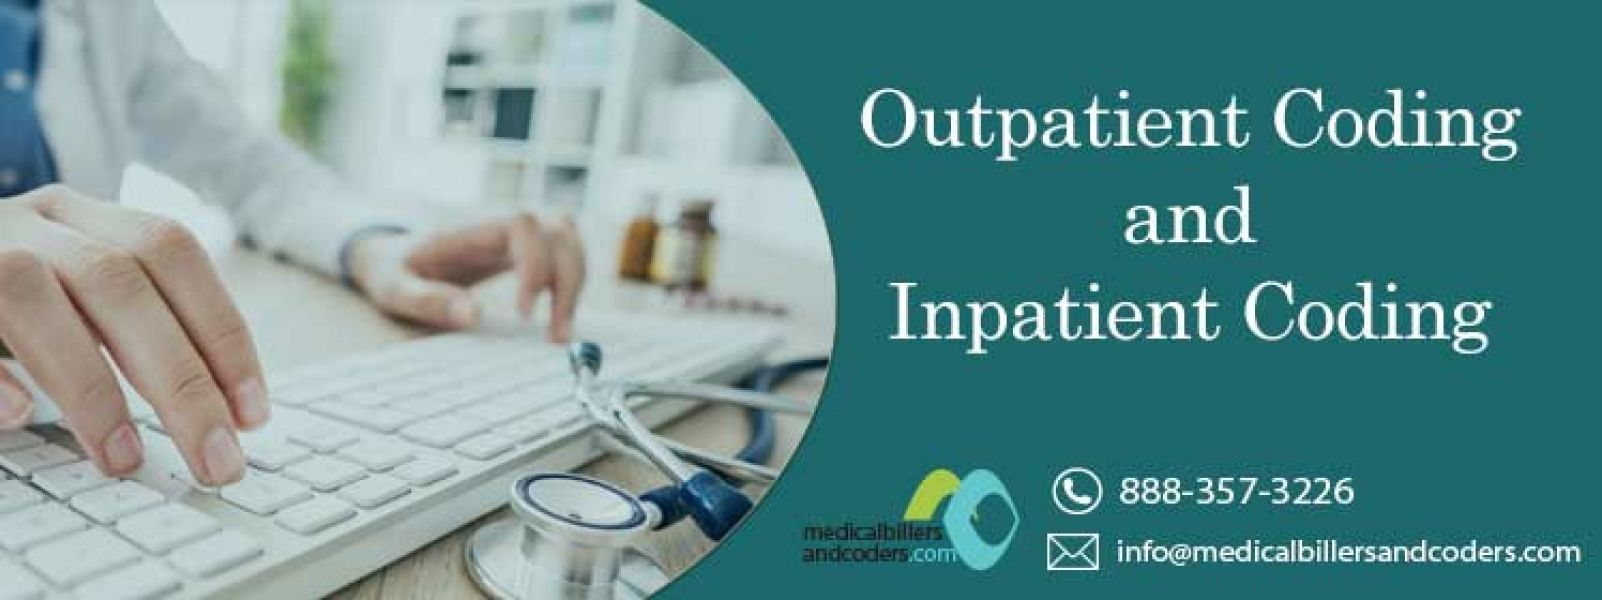 Outpatient Coding and Inpatient Coding